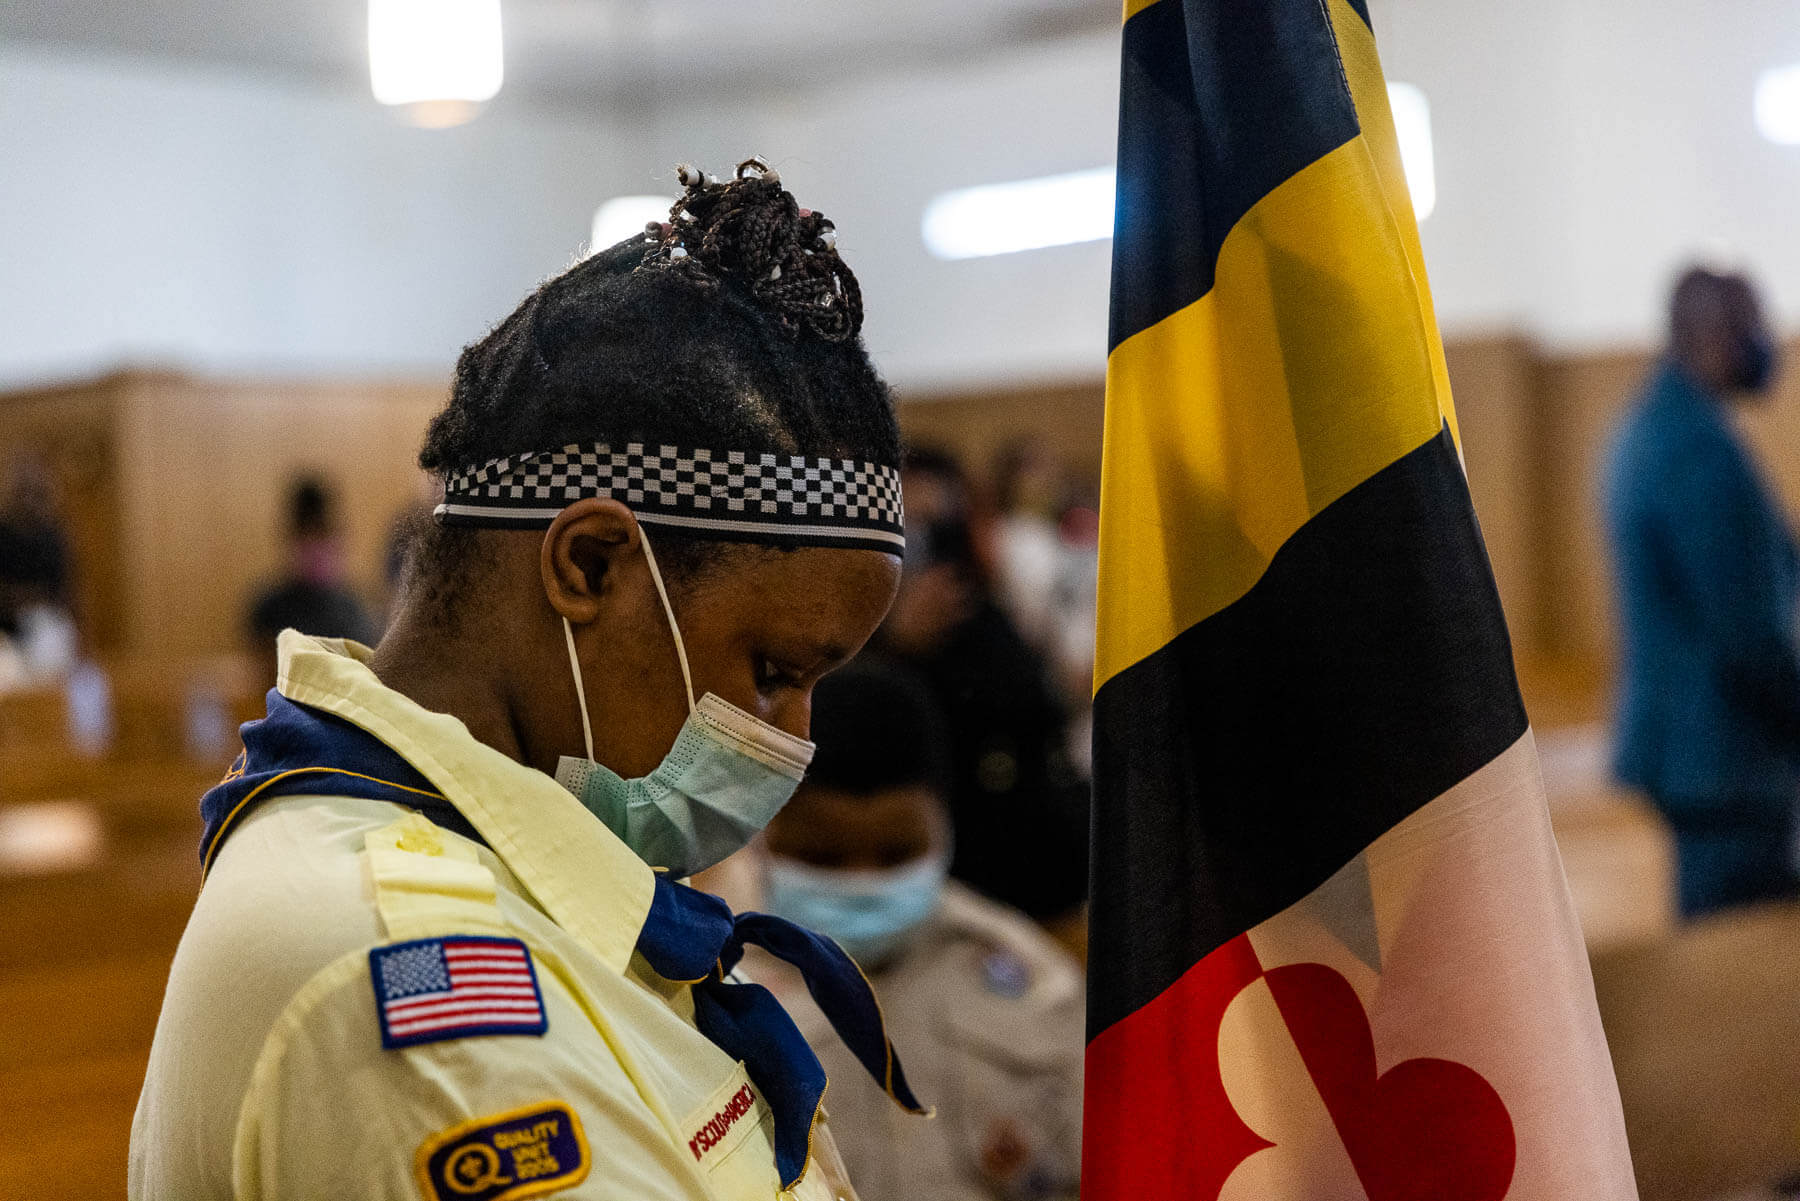 A boy scout member prepares the Maryland flag.